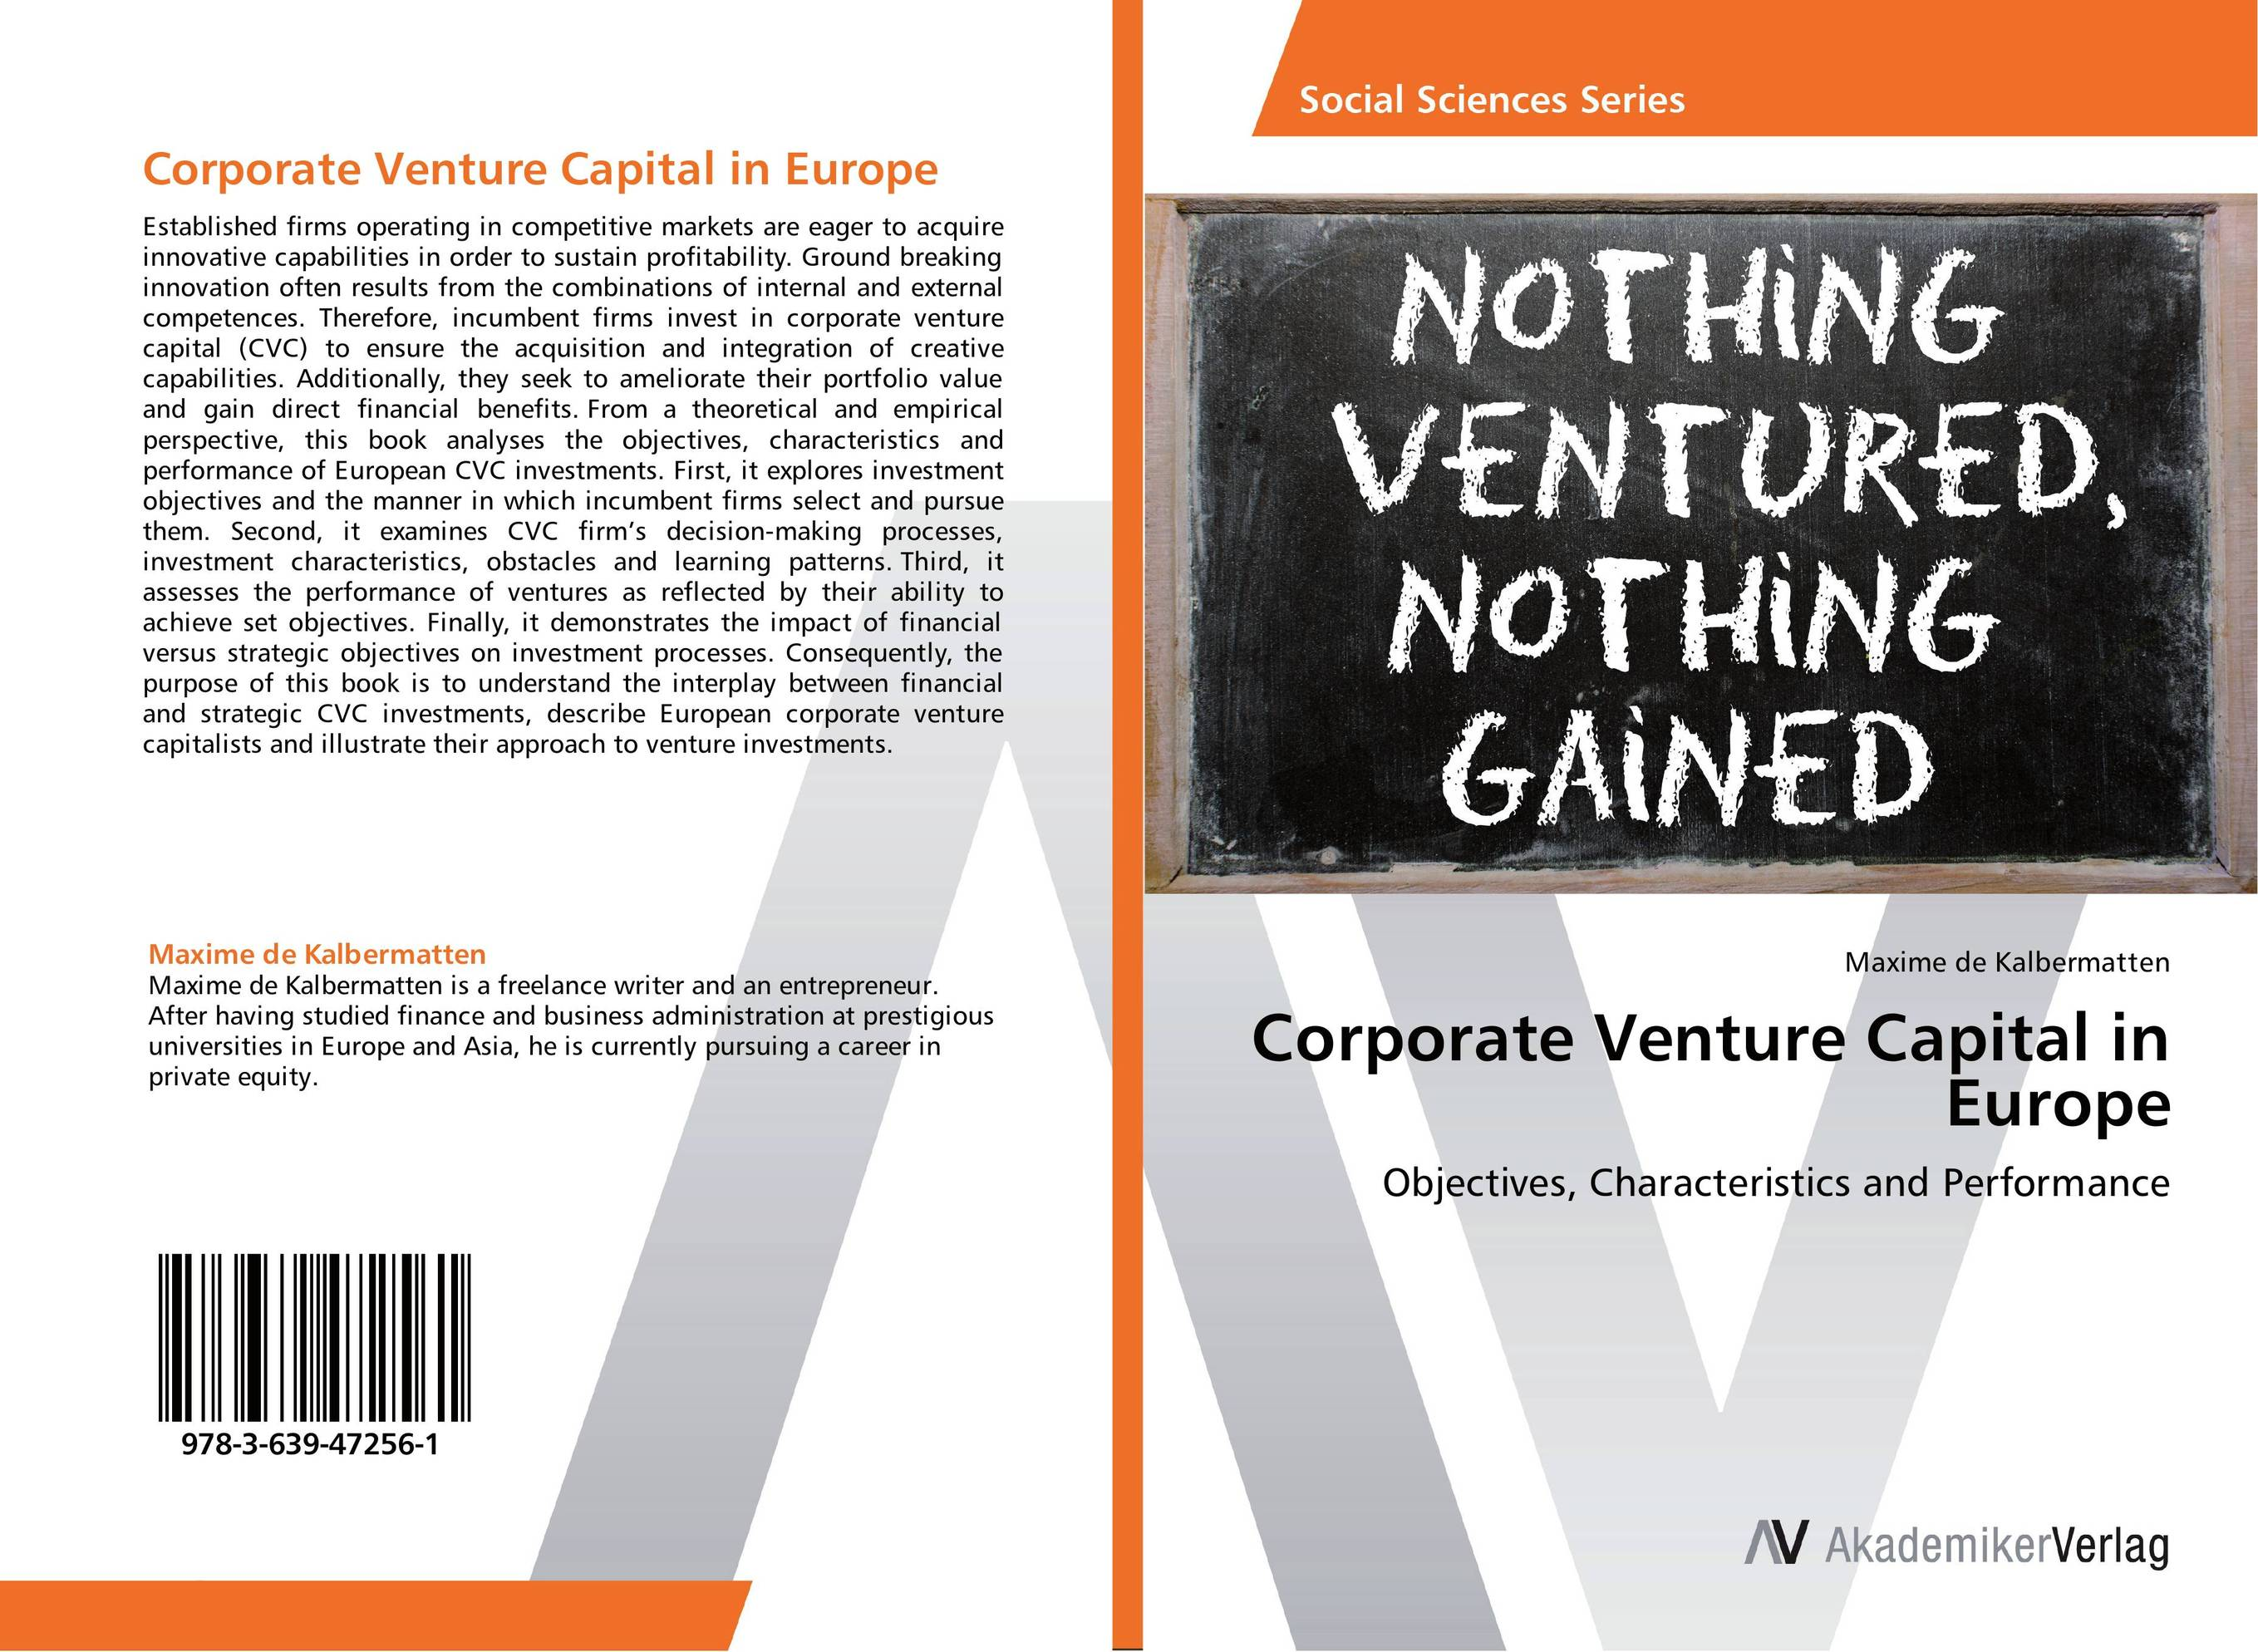 Фото Corporate Venture Capital in Europe finance and investments